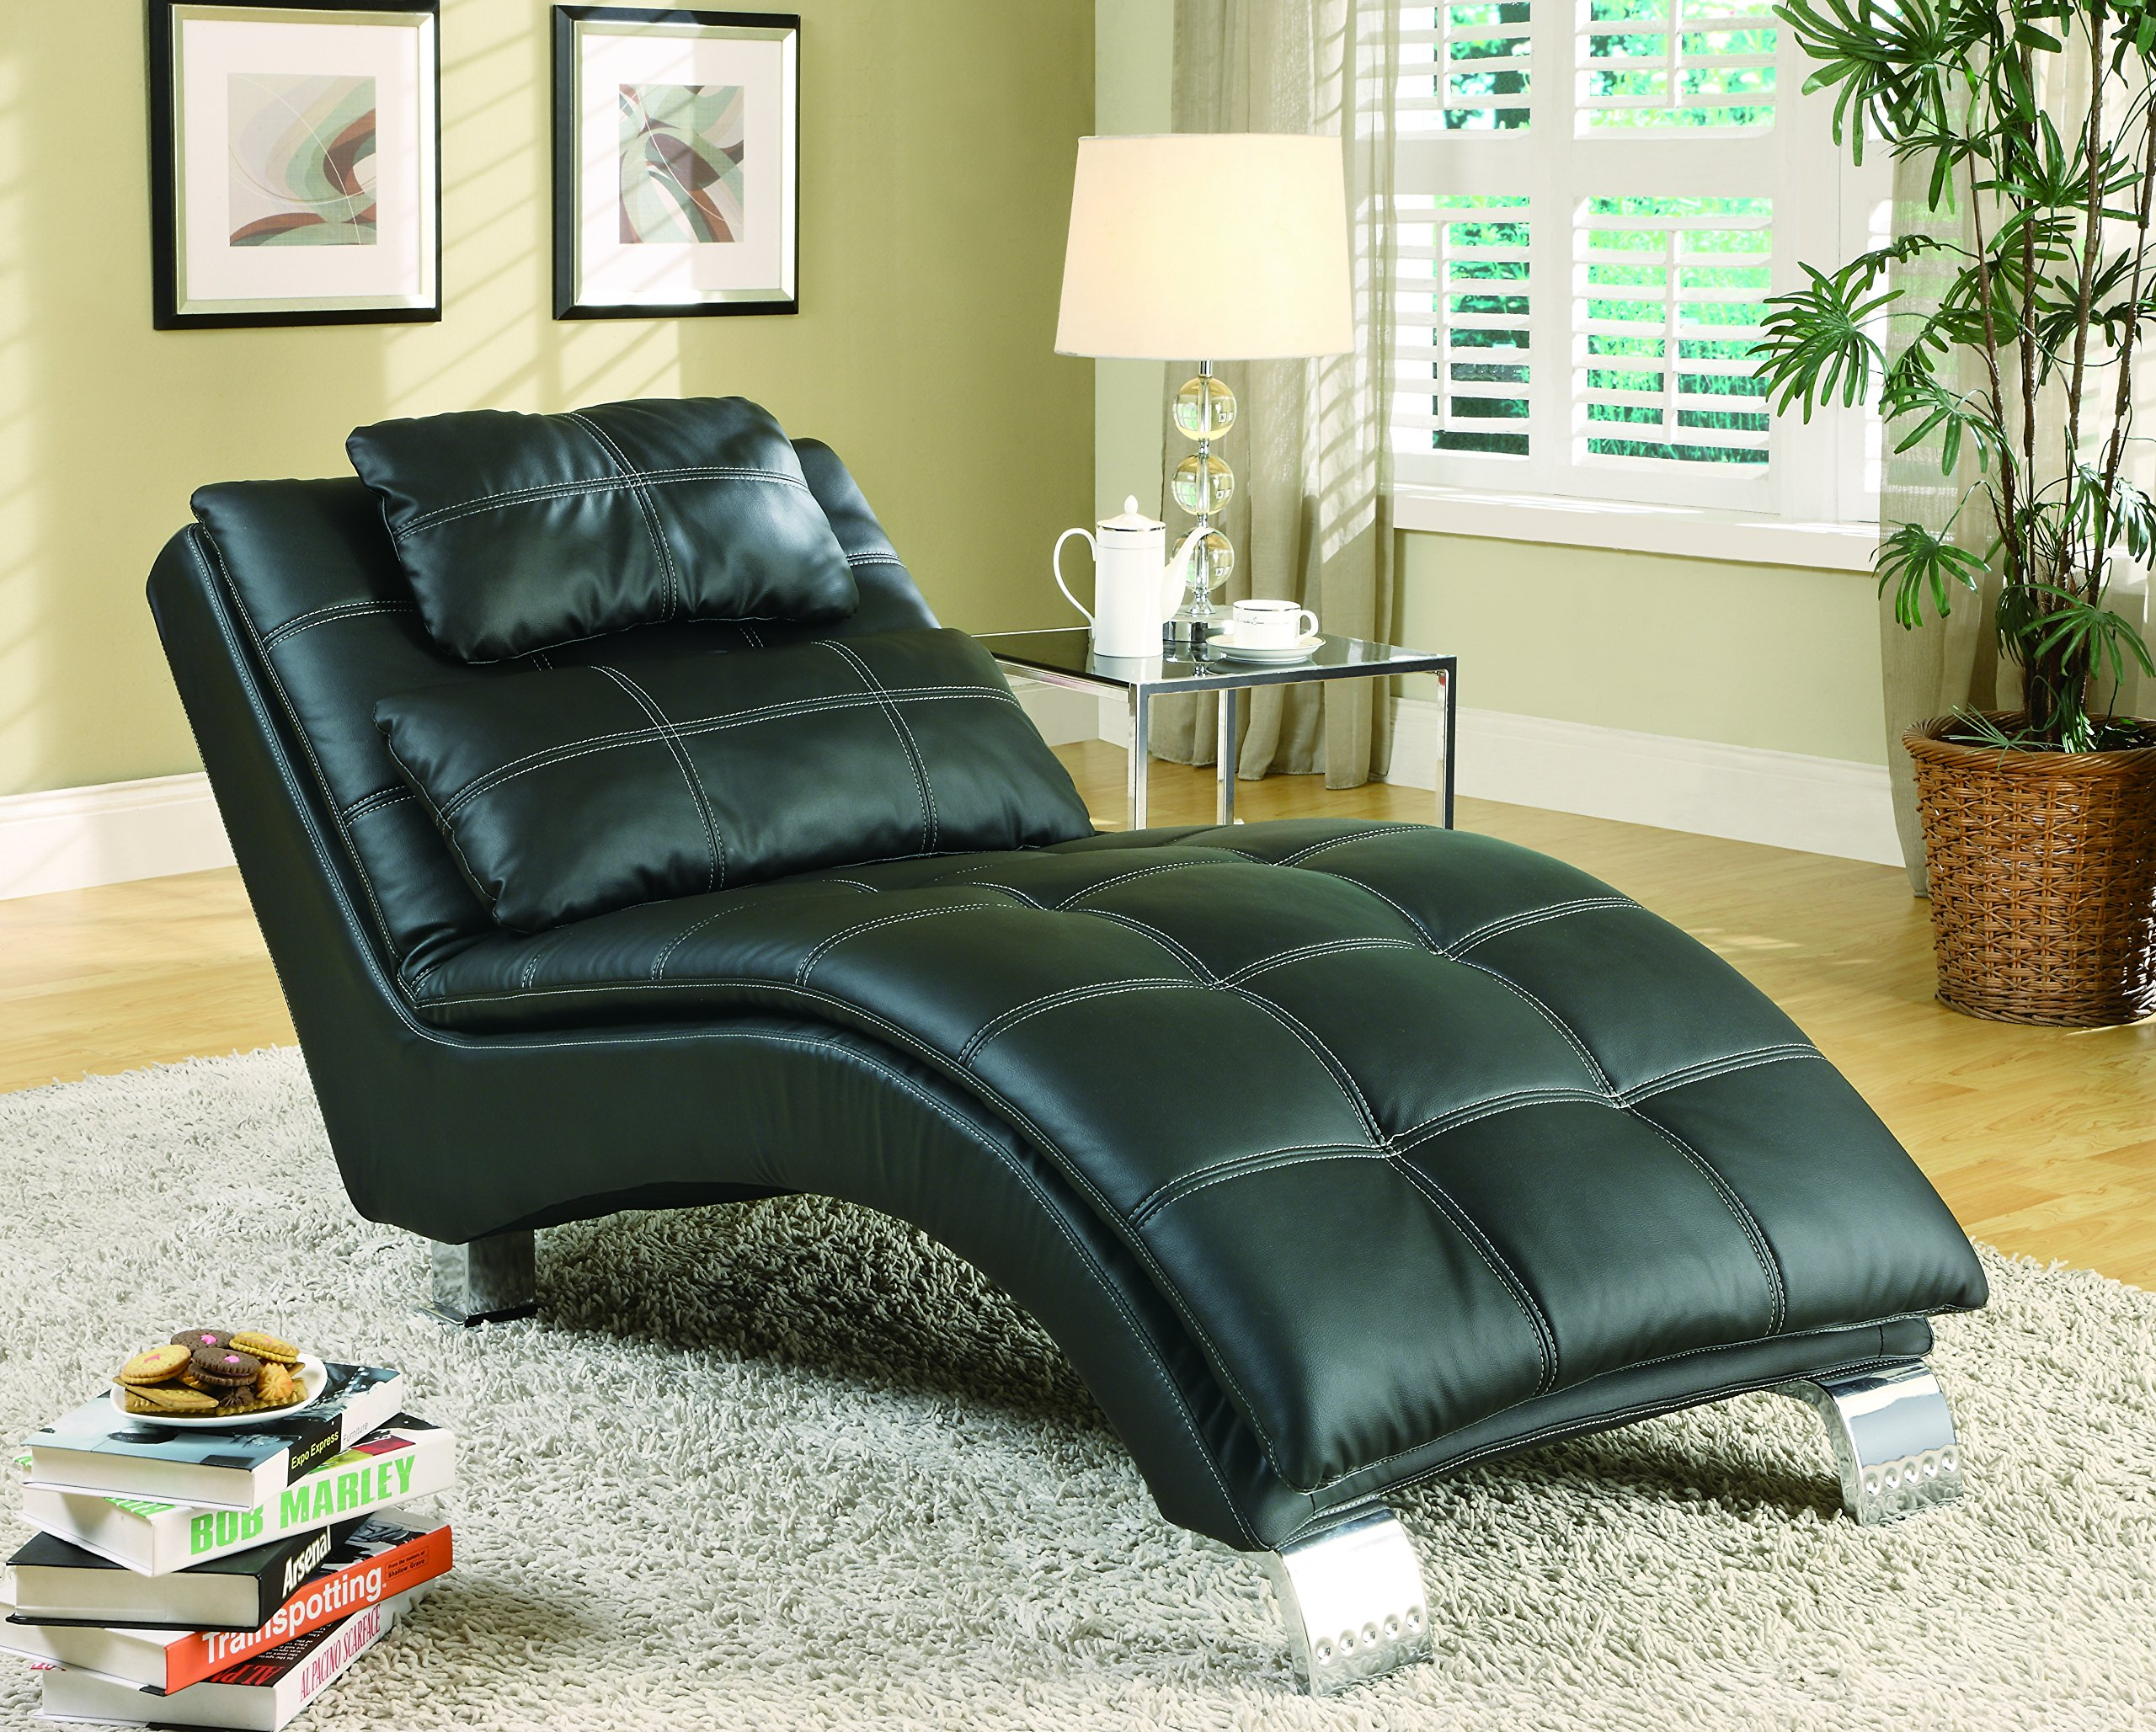 Dilleston Upholstered Chaise Black by Coaster Home Furnishings